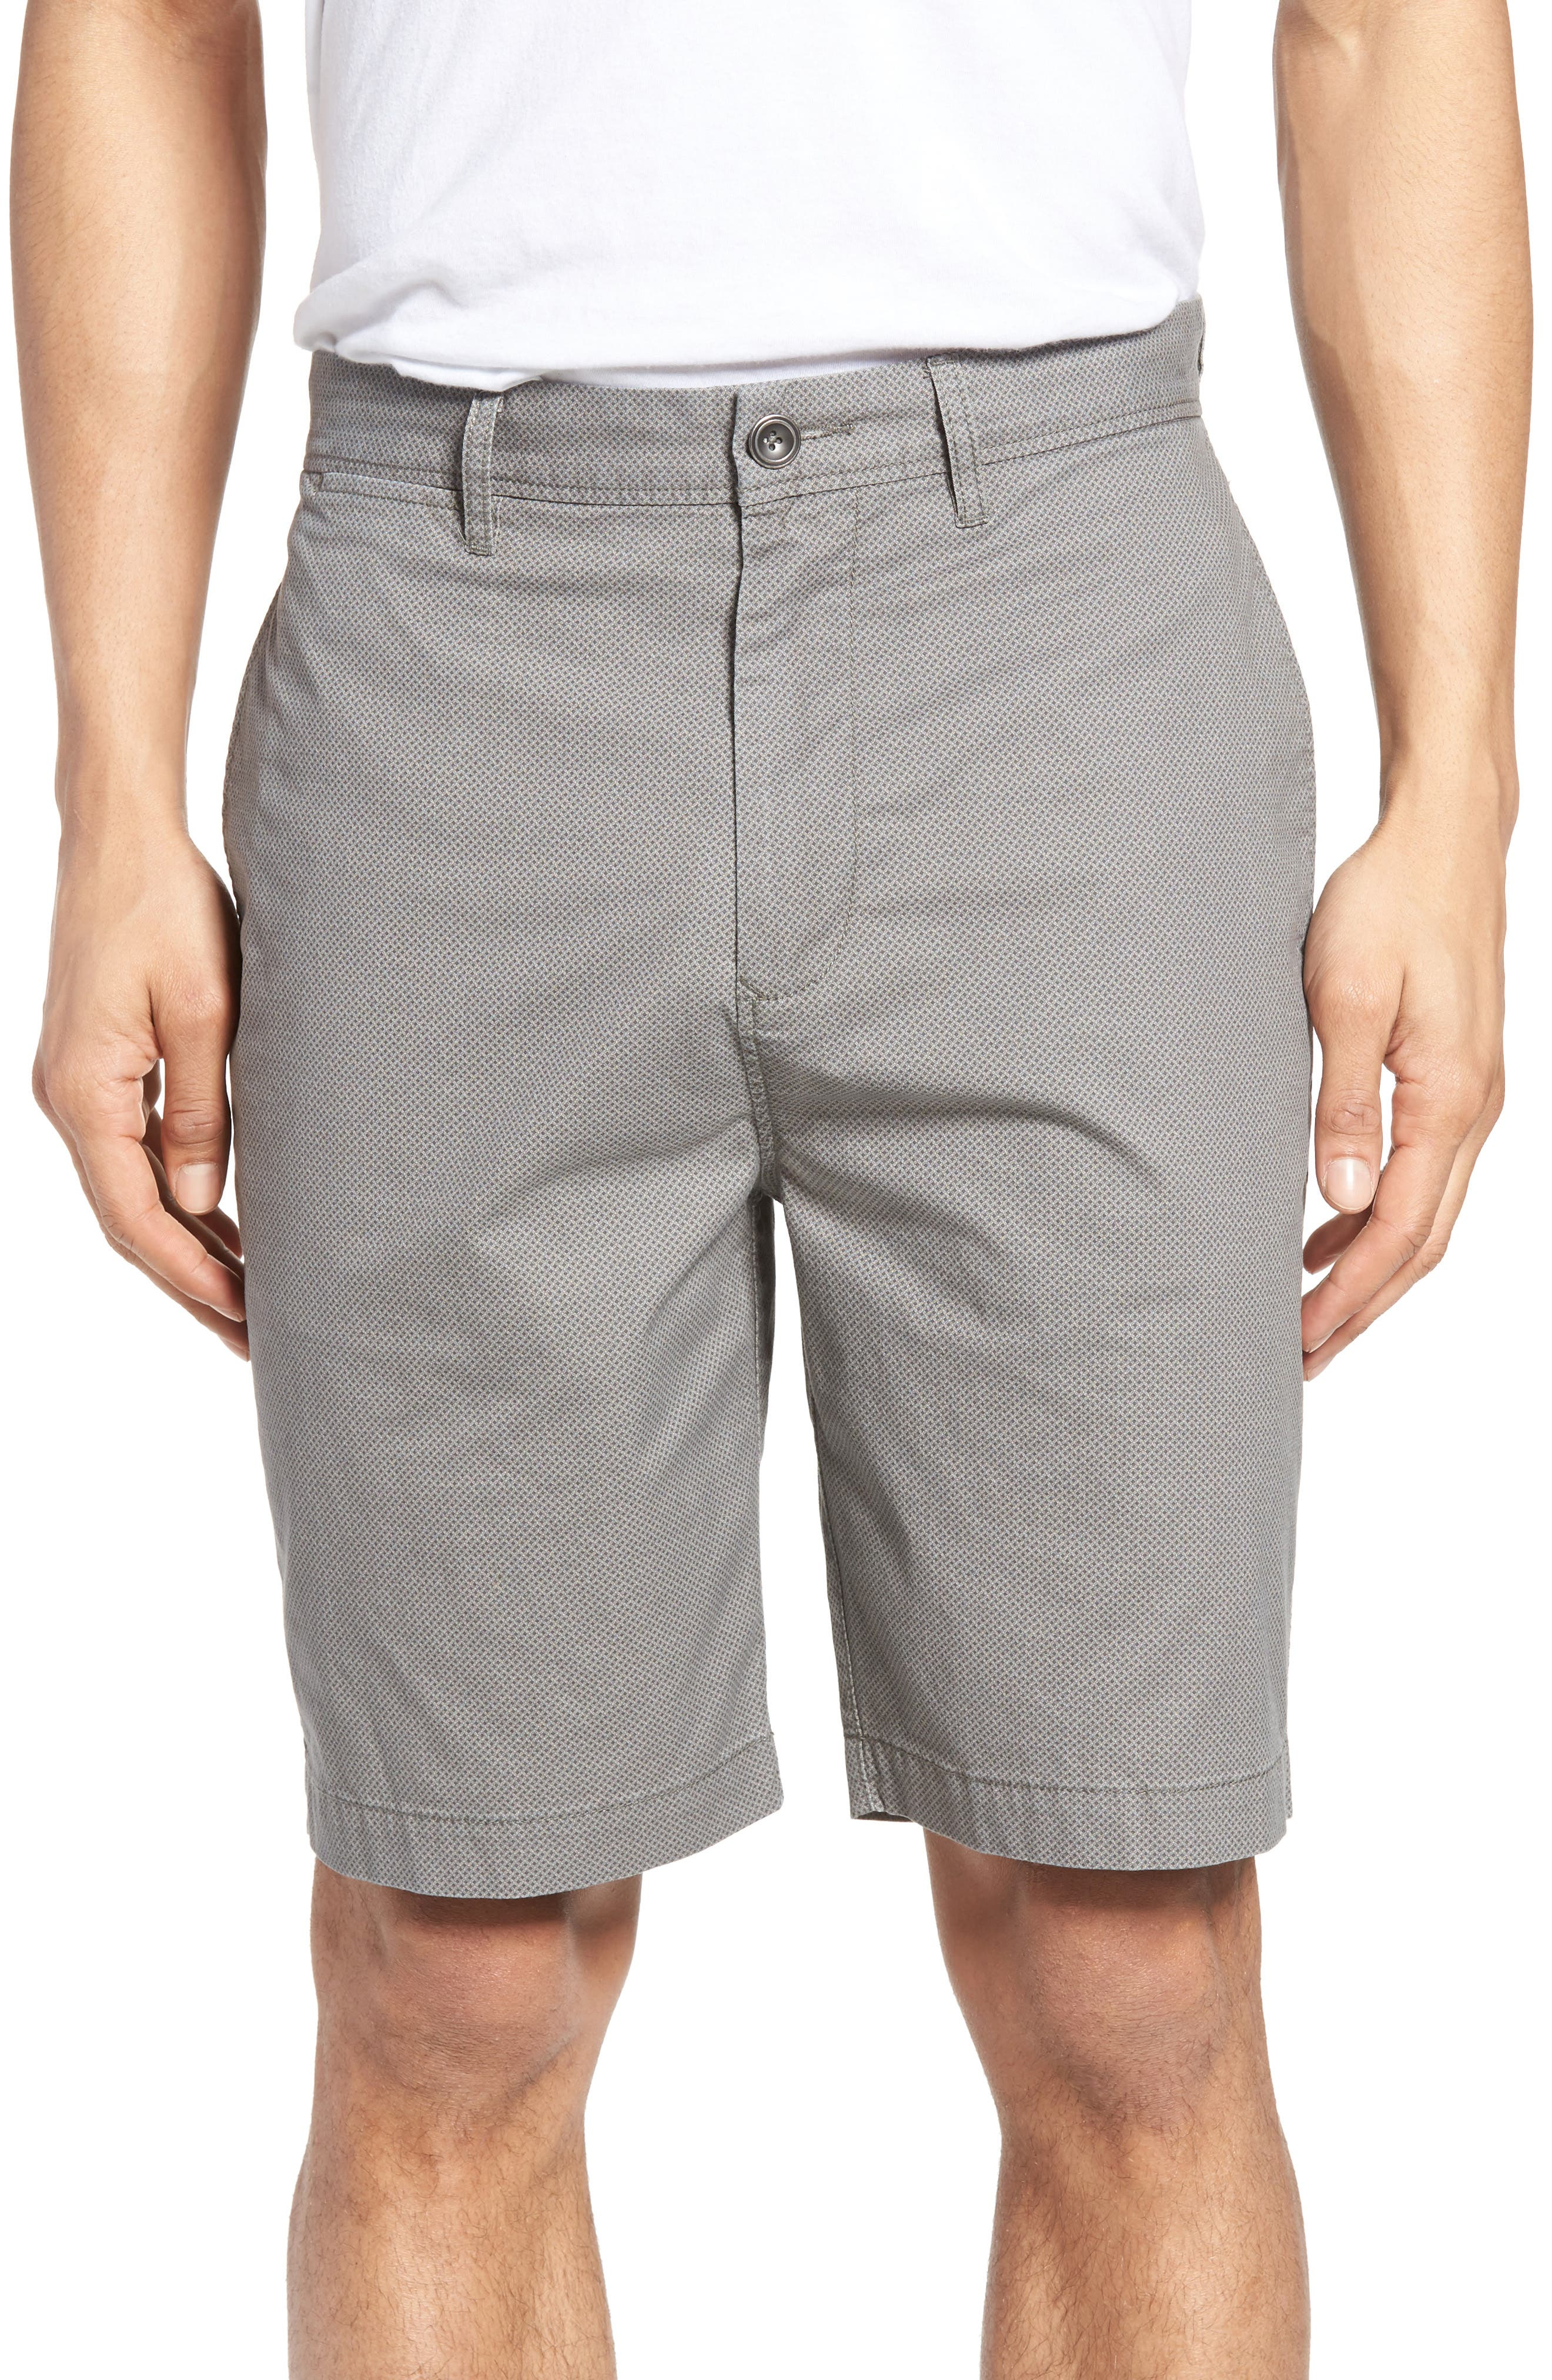 Benneydale Shorts,                         Main,                         color, 039